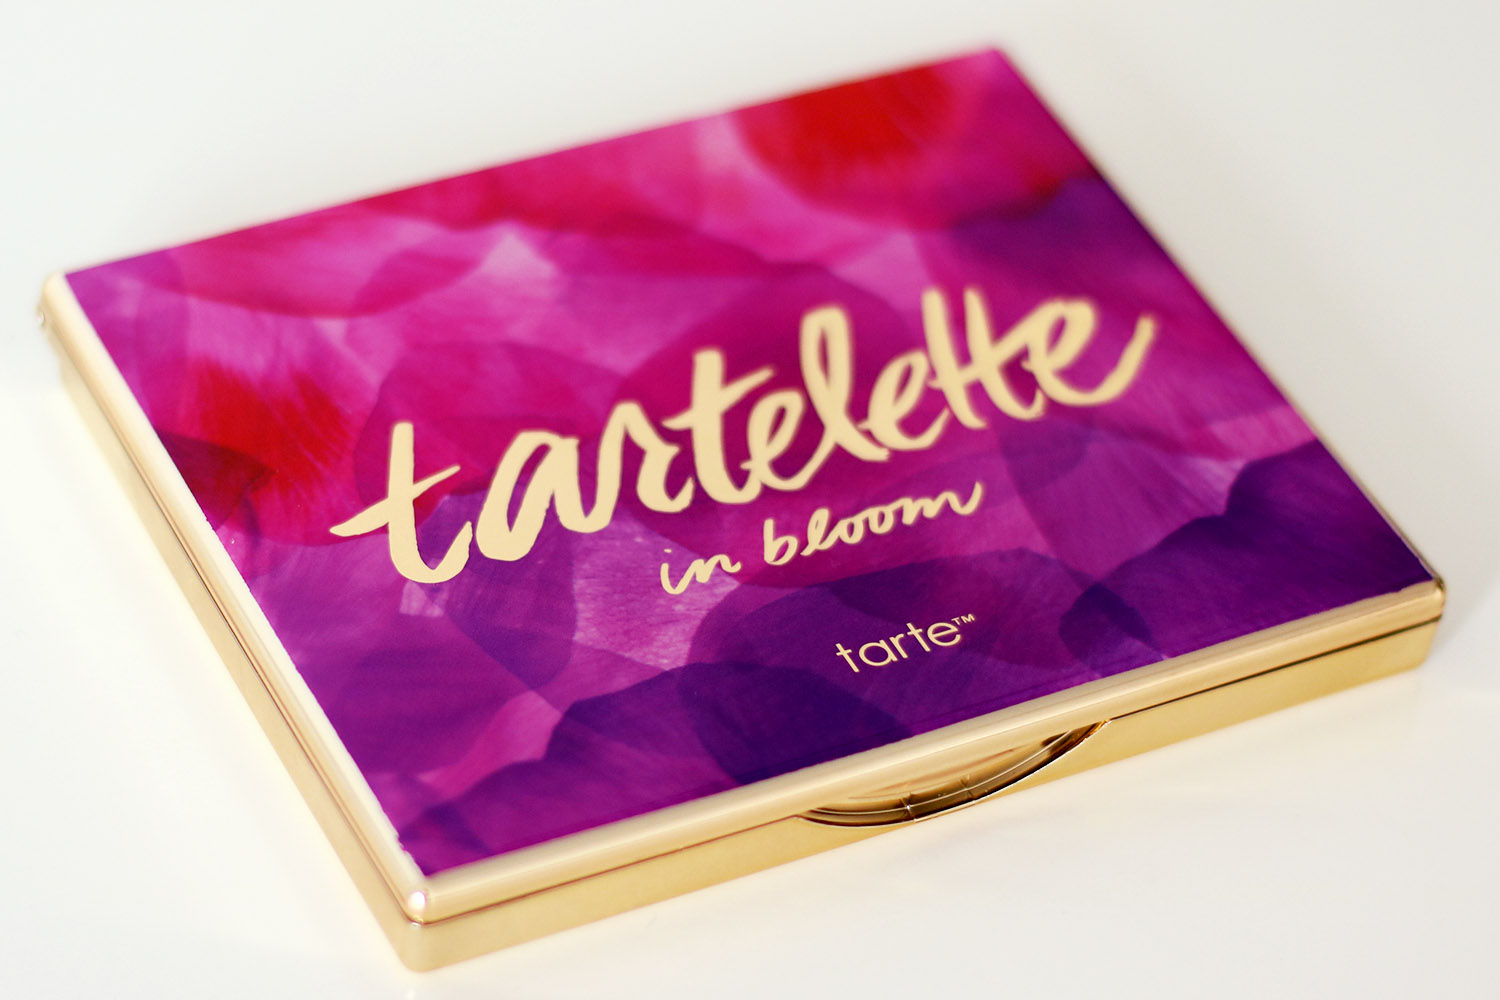 Palette Verpackung Erfahrungsbericht Tarte Tartelette In Bloom Review Lidschattenpalette Makeuptutorial Helle Haut Swatch Beauty Blog Mondays Makeup Advanceyourstyle Berlin Influence